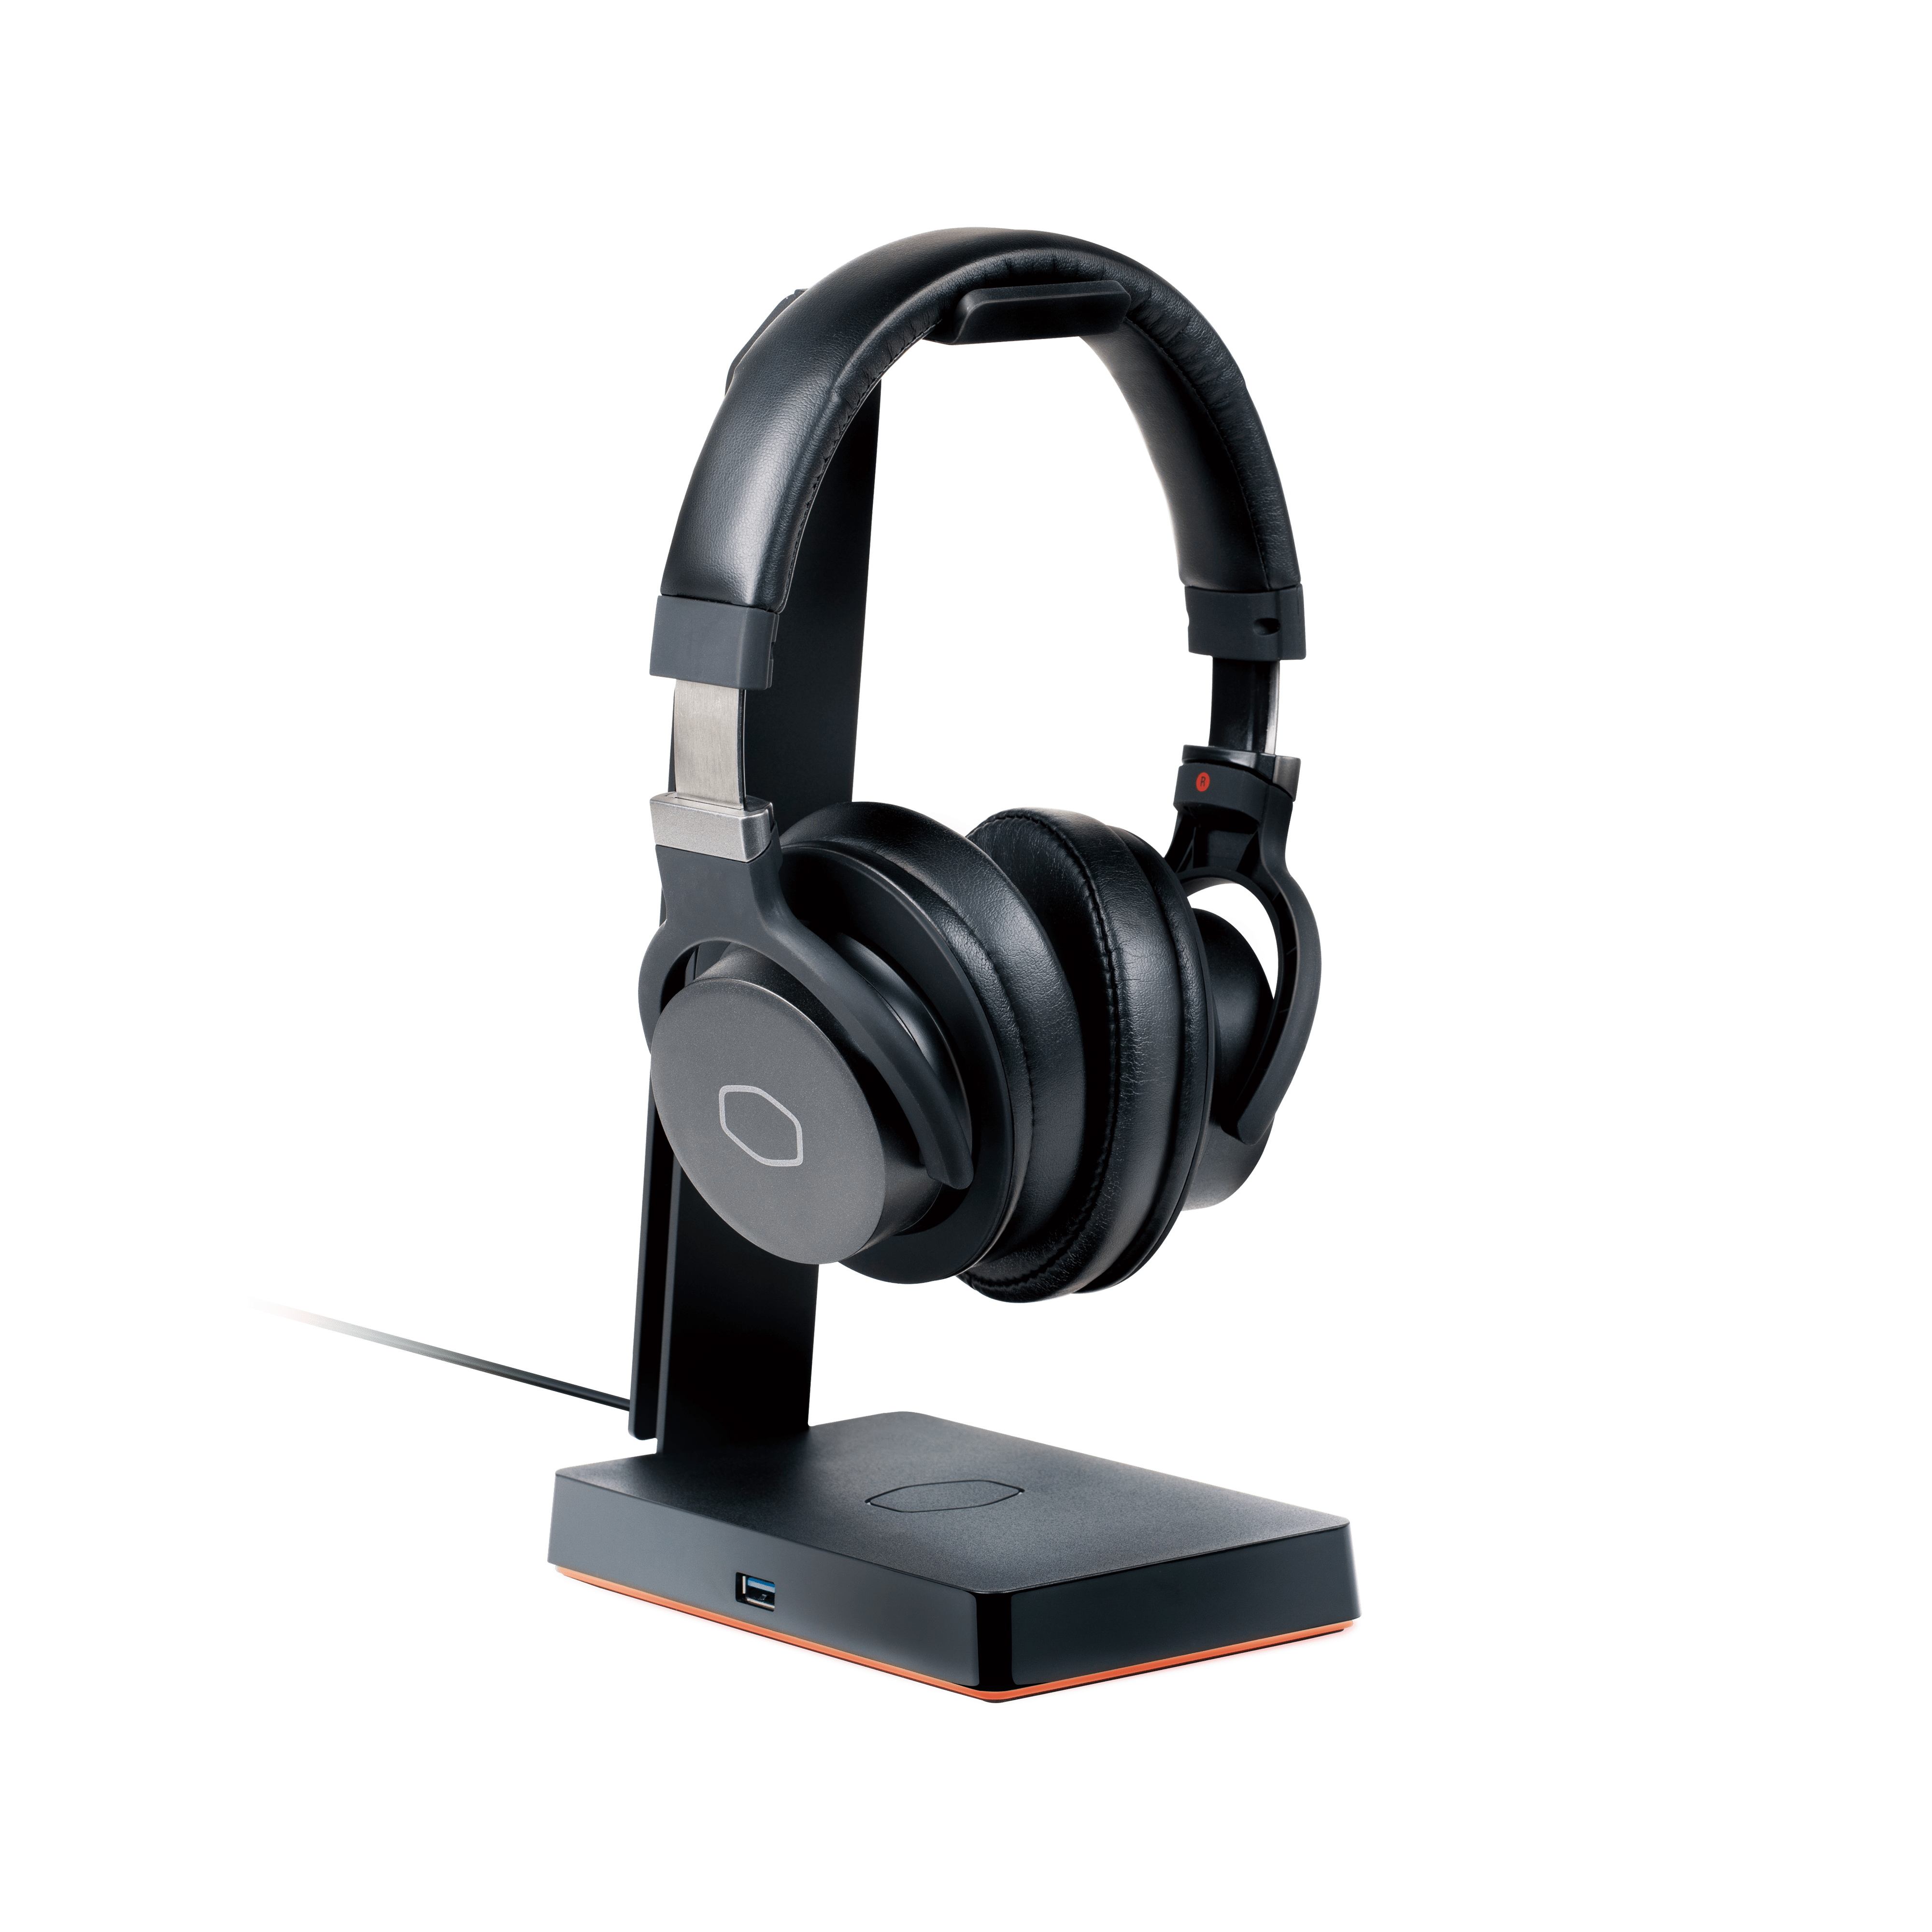 Cooler Master presenta GS750, hub USB con supporto cuffie e ricarica wireless